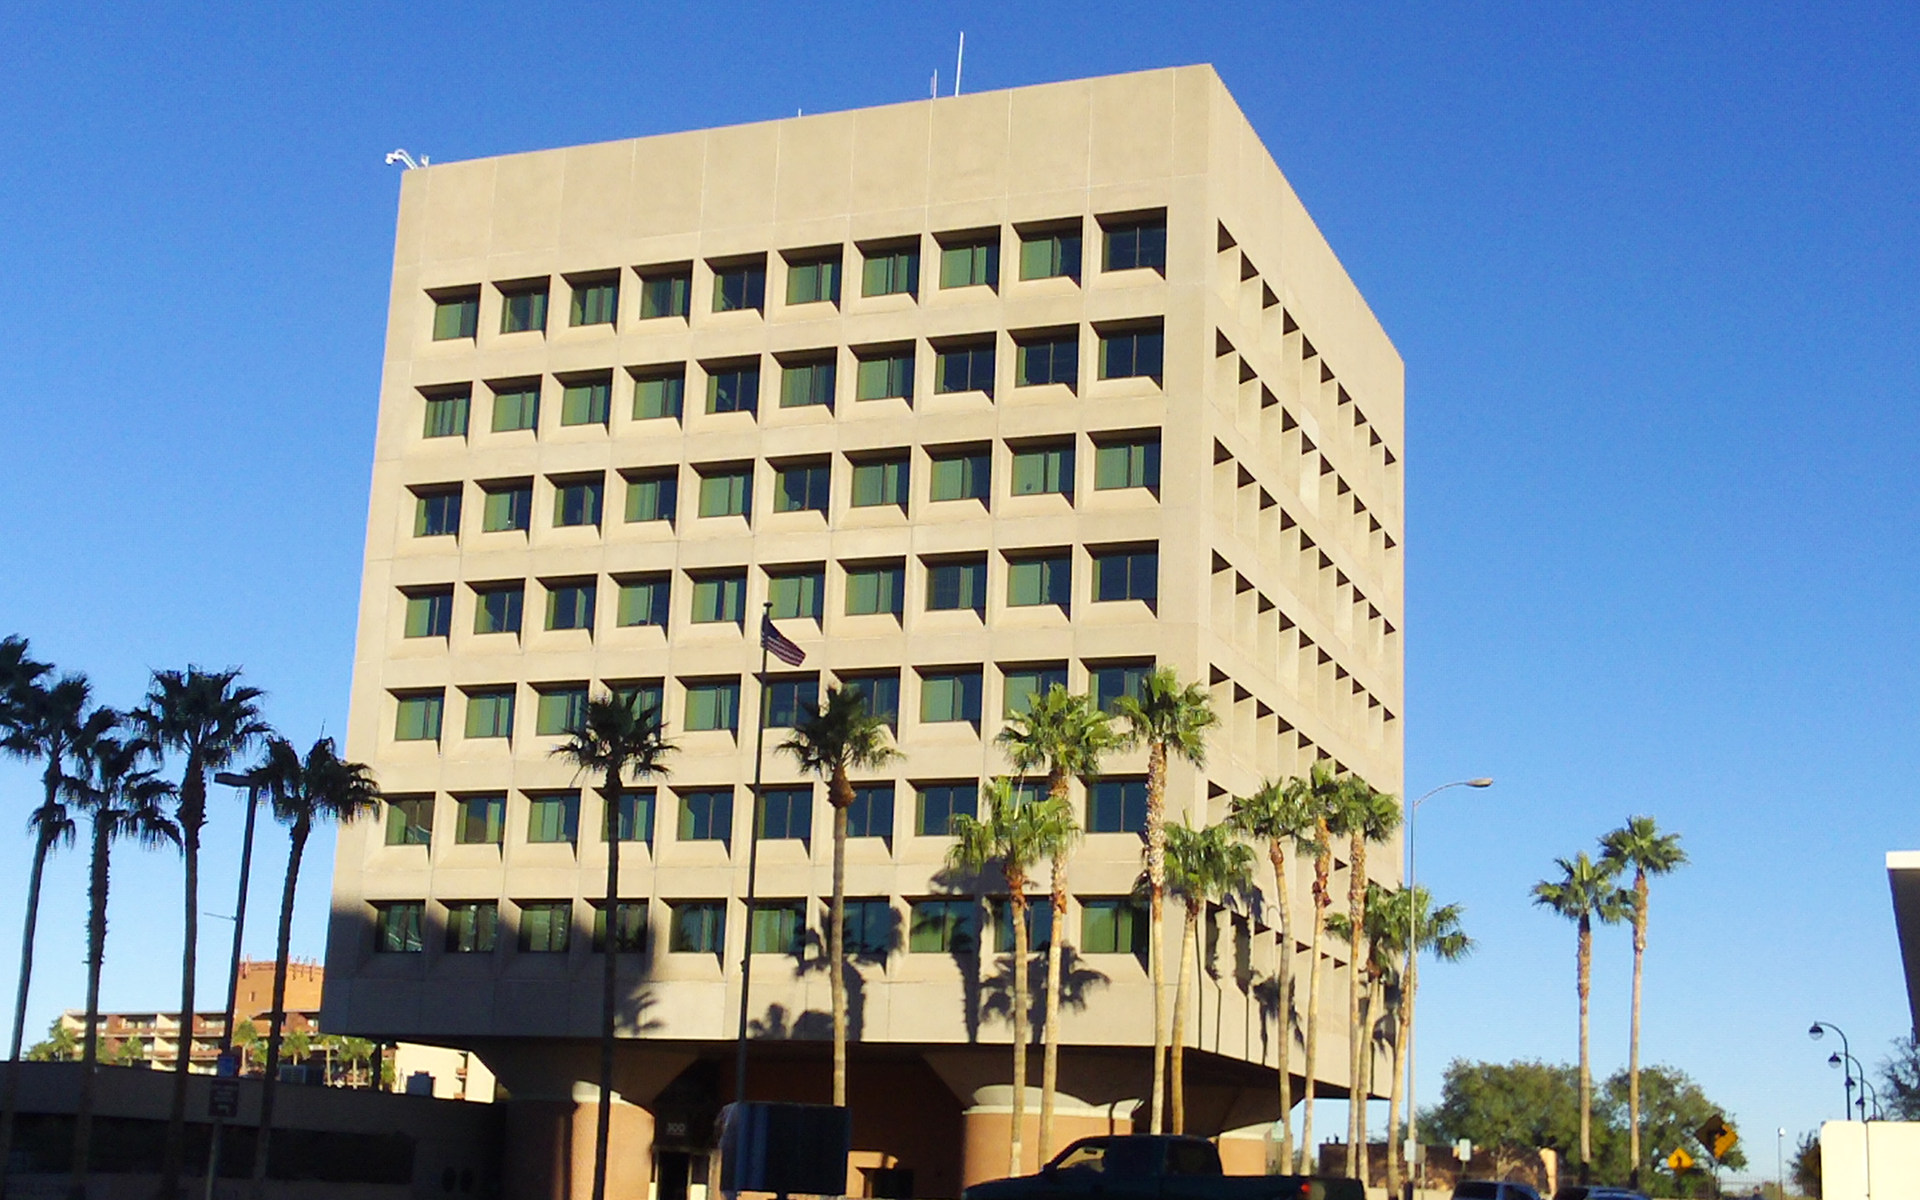 The federal building in downtown Tucson.